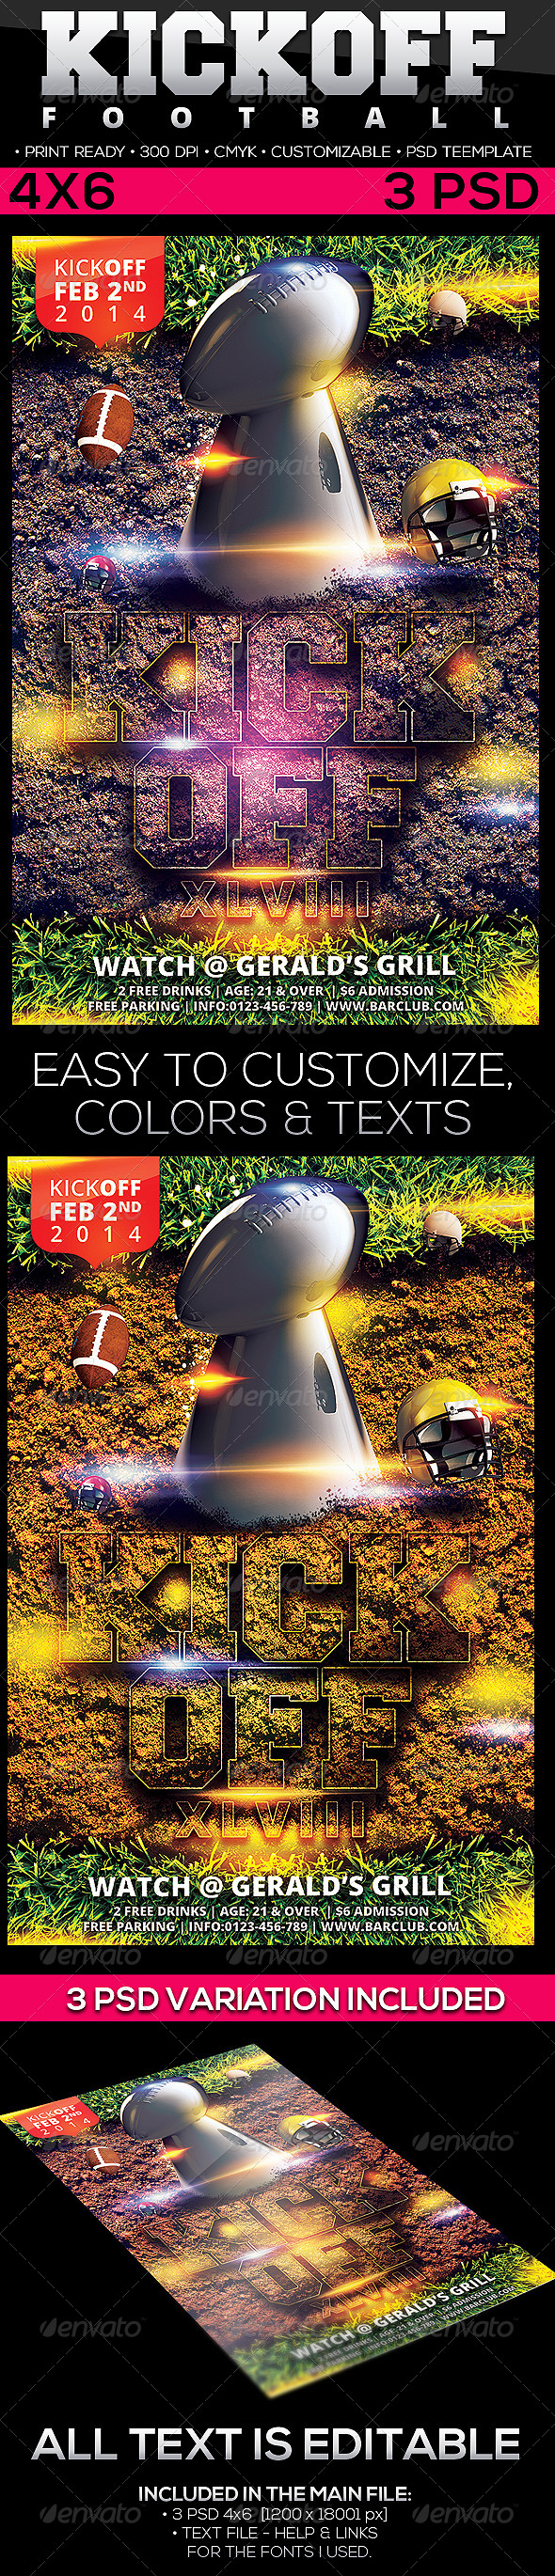 Kickoff Football Flyer Template - Sports Events